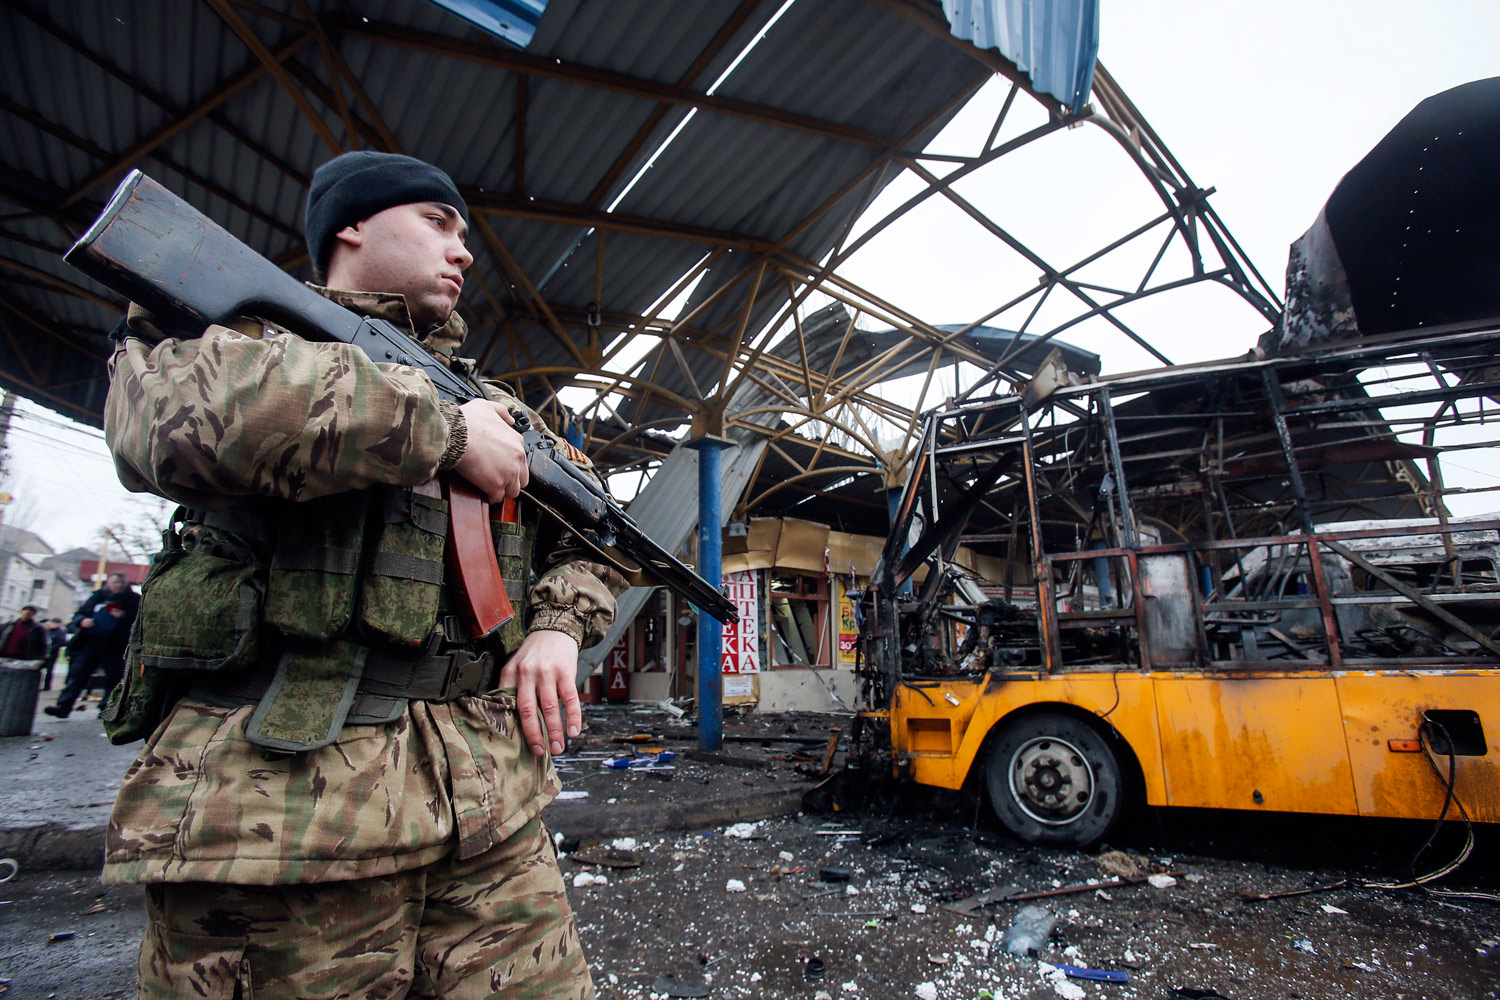 Why-Arming-the-Ukrainian-Government-Would-Be-Disastrous